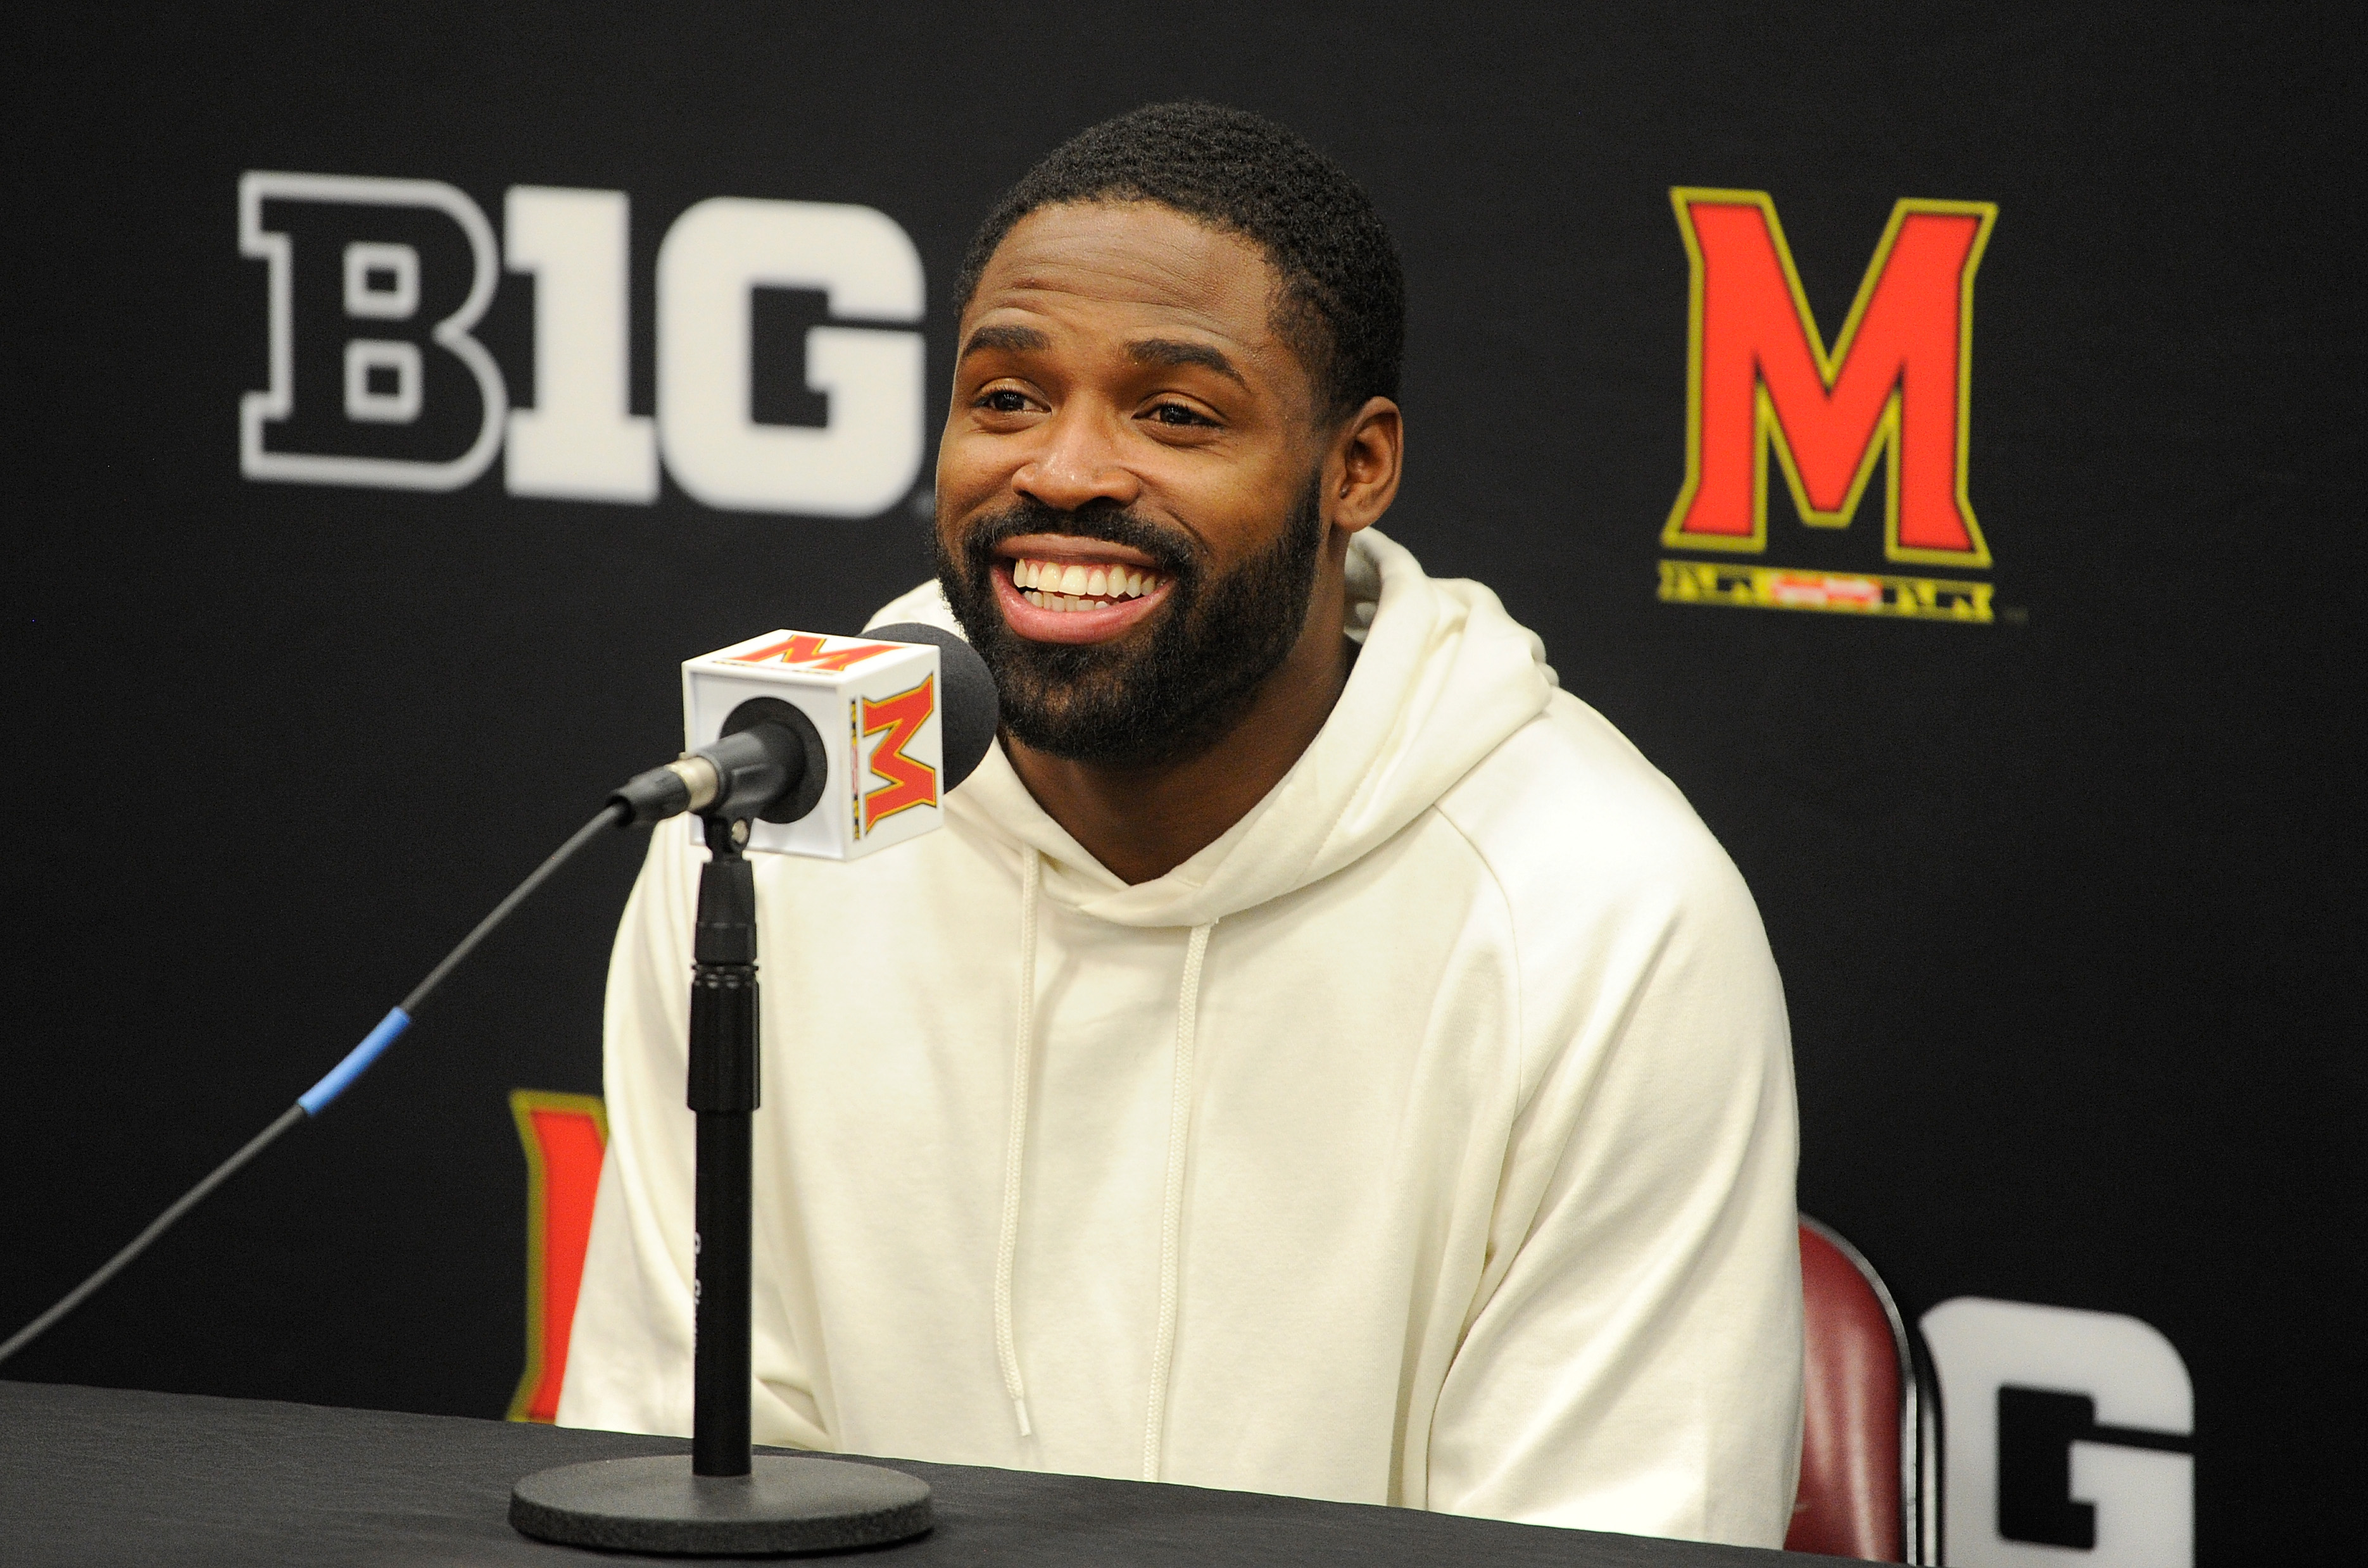 Torrey Smith talks to the media before the game between the Maryland Terrapins and the Michigan Wolverines at Xfinity Center in College Park, Maryland on Feb. 24, 2018.